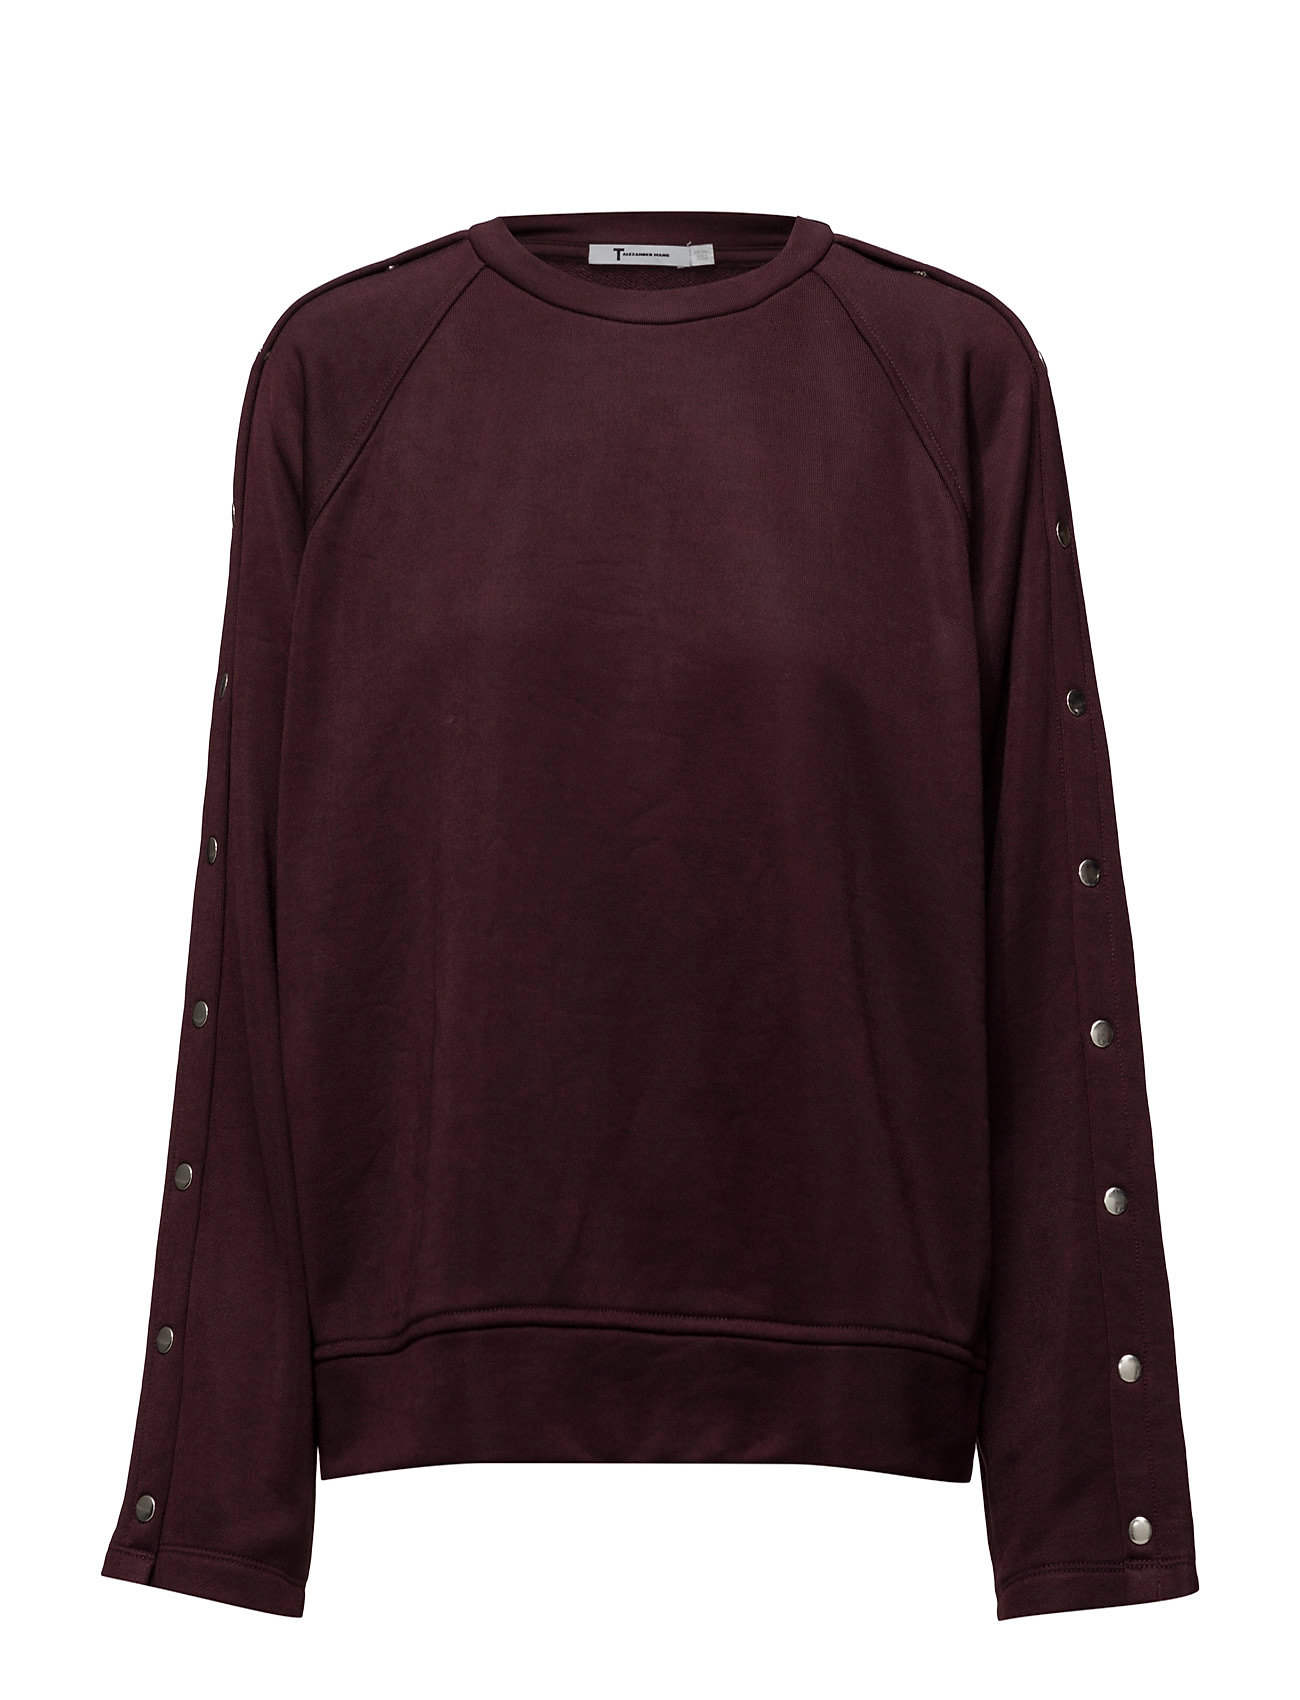 t by alexander wang – Sleek french terry crewneck sweatshirt w/ snaps fra boozt.com dk